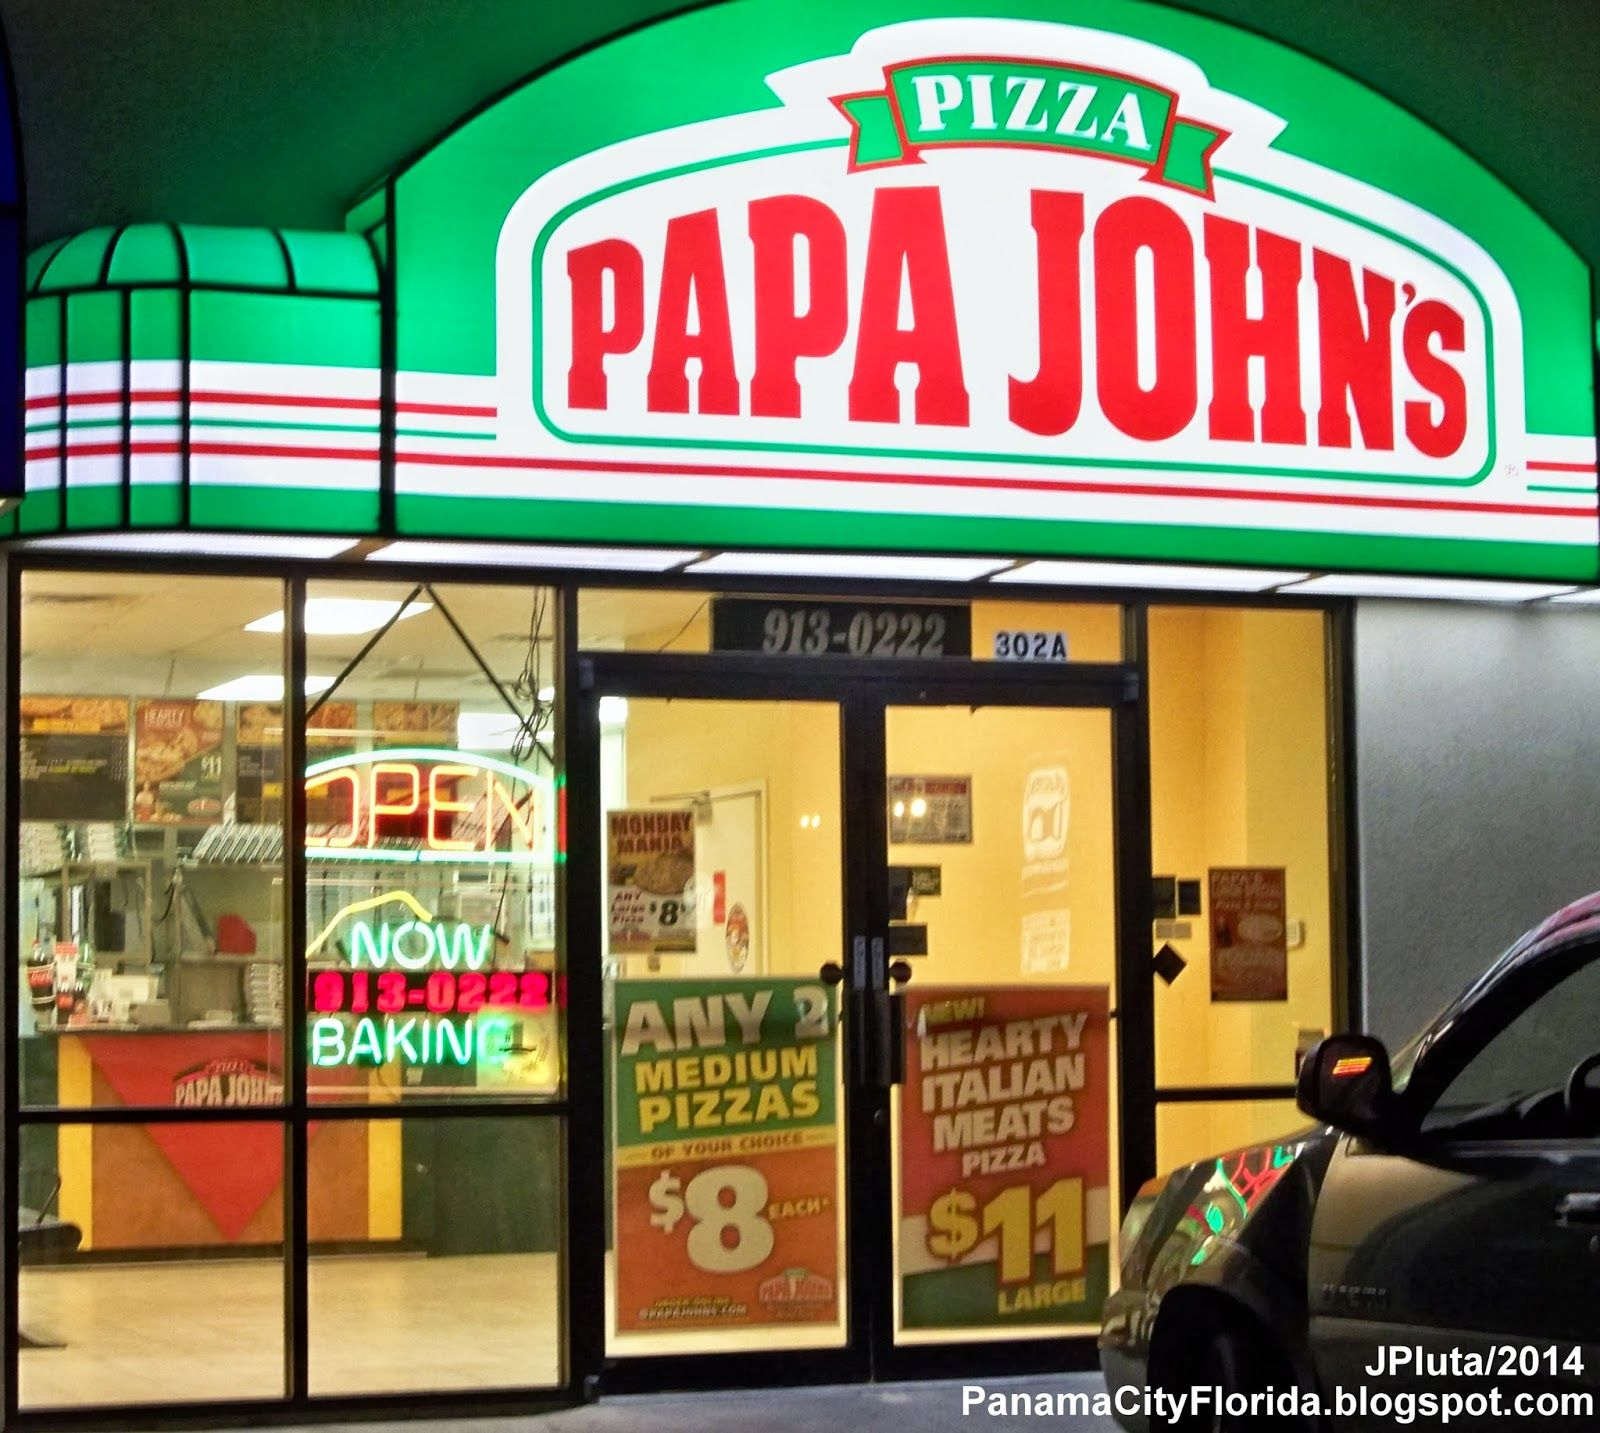 Free pizza coupons pizza hut specials dominos pizza papa john s pizza - Papa John S Pizza Papa John S Pizza Panama City Florida West 23rd Street Papa John S